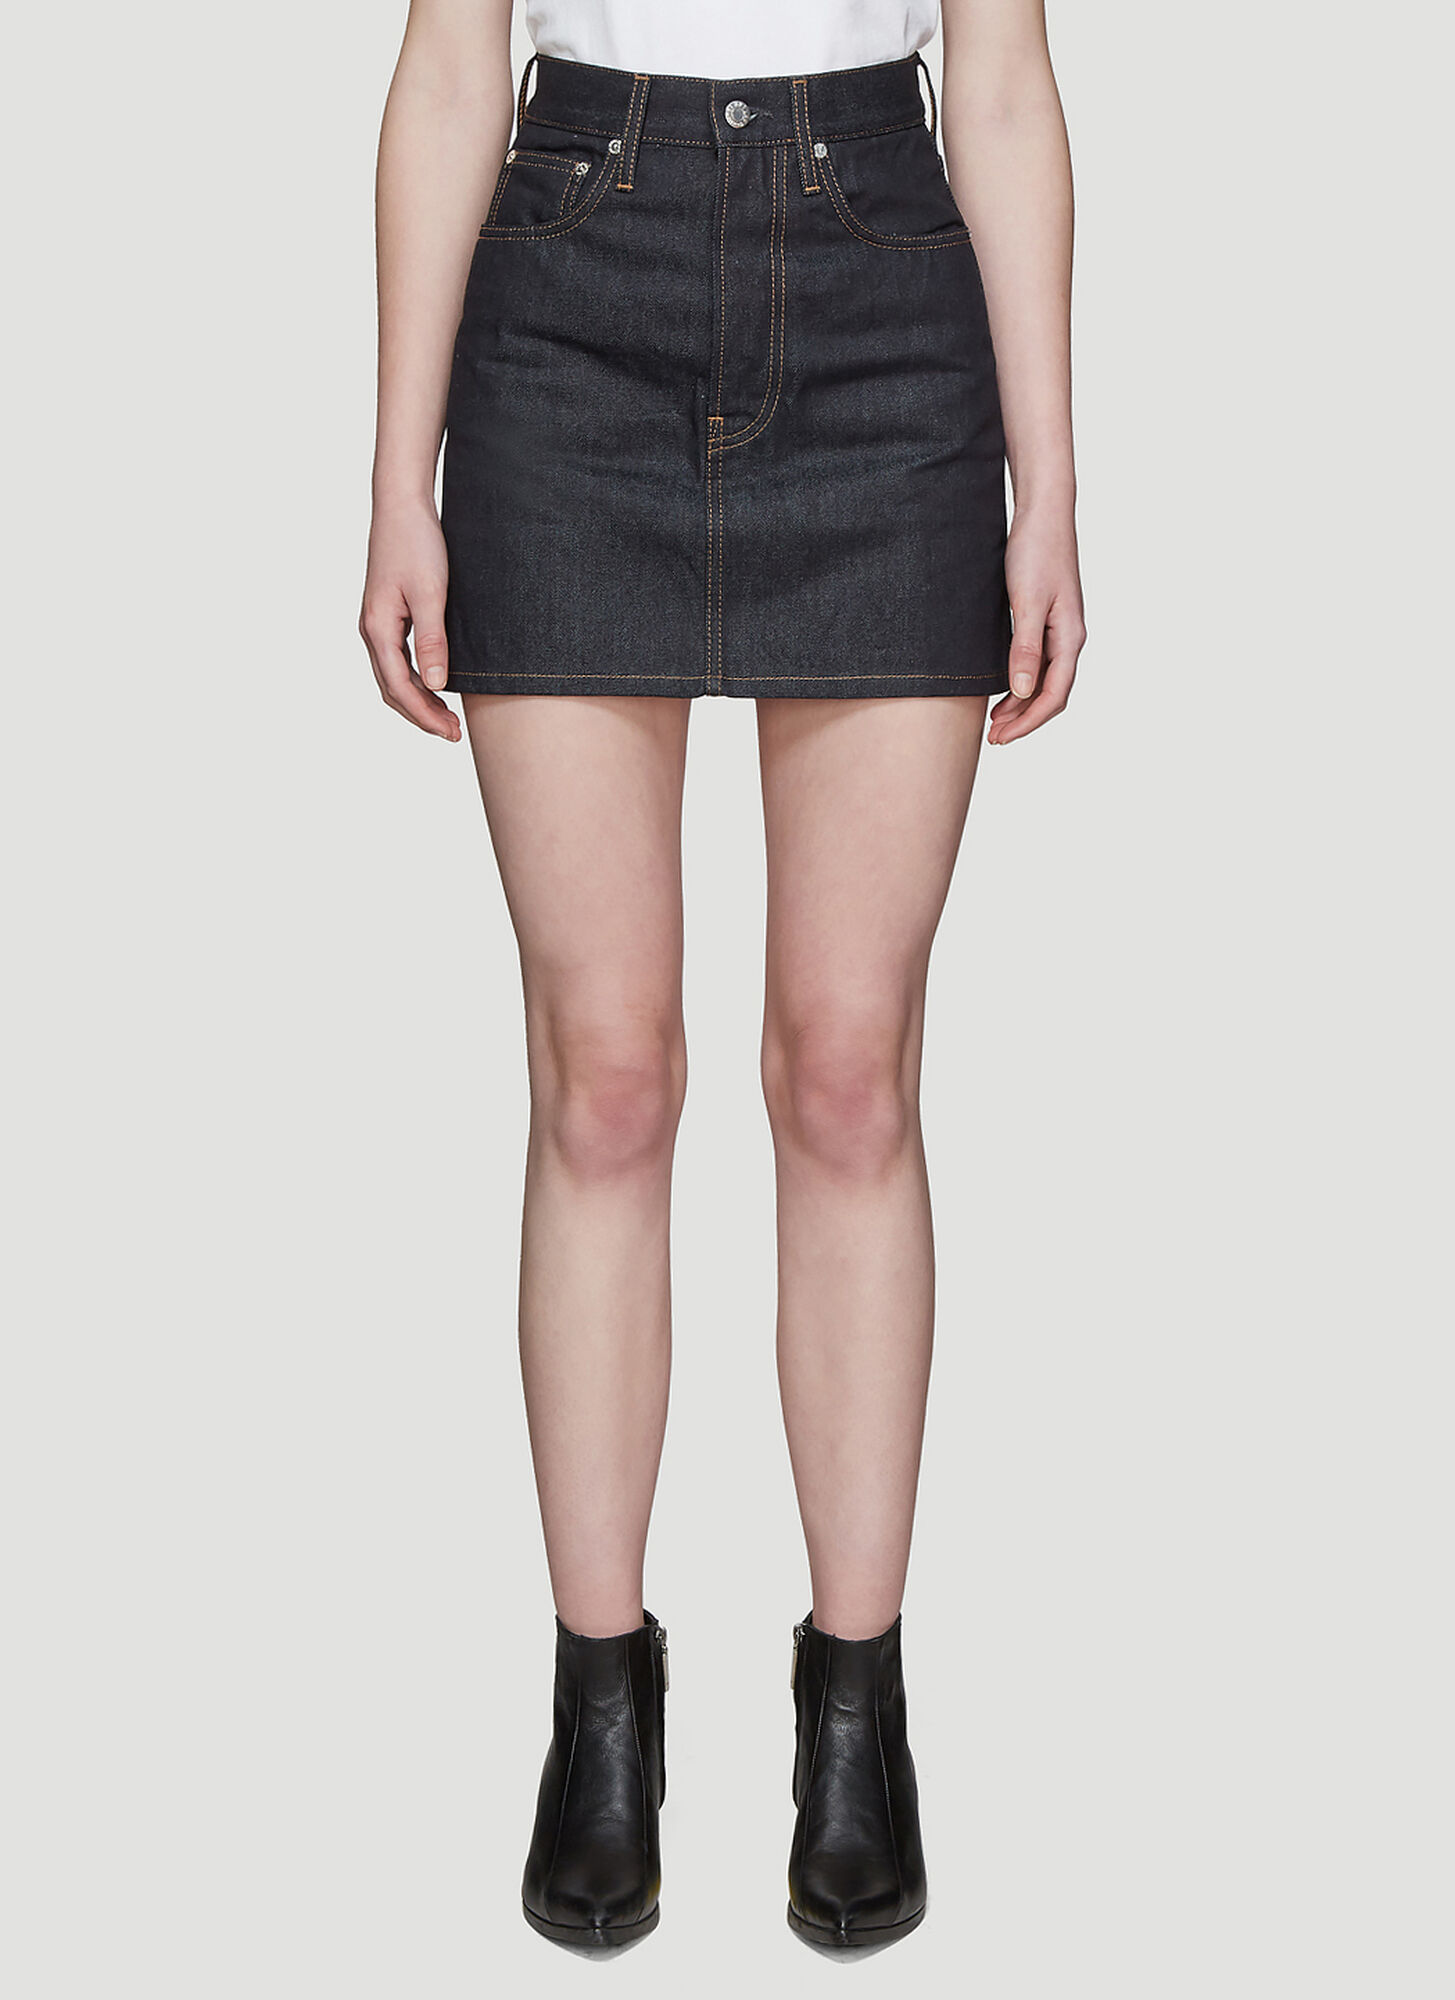 Helmut Lang Classic 5 Pocket Denim Mini Skirt in Blue